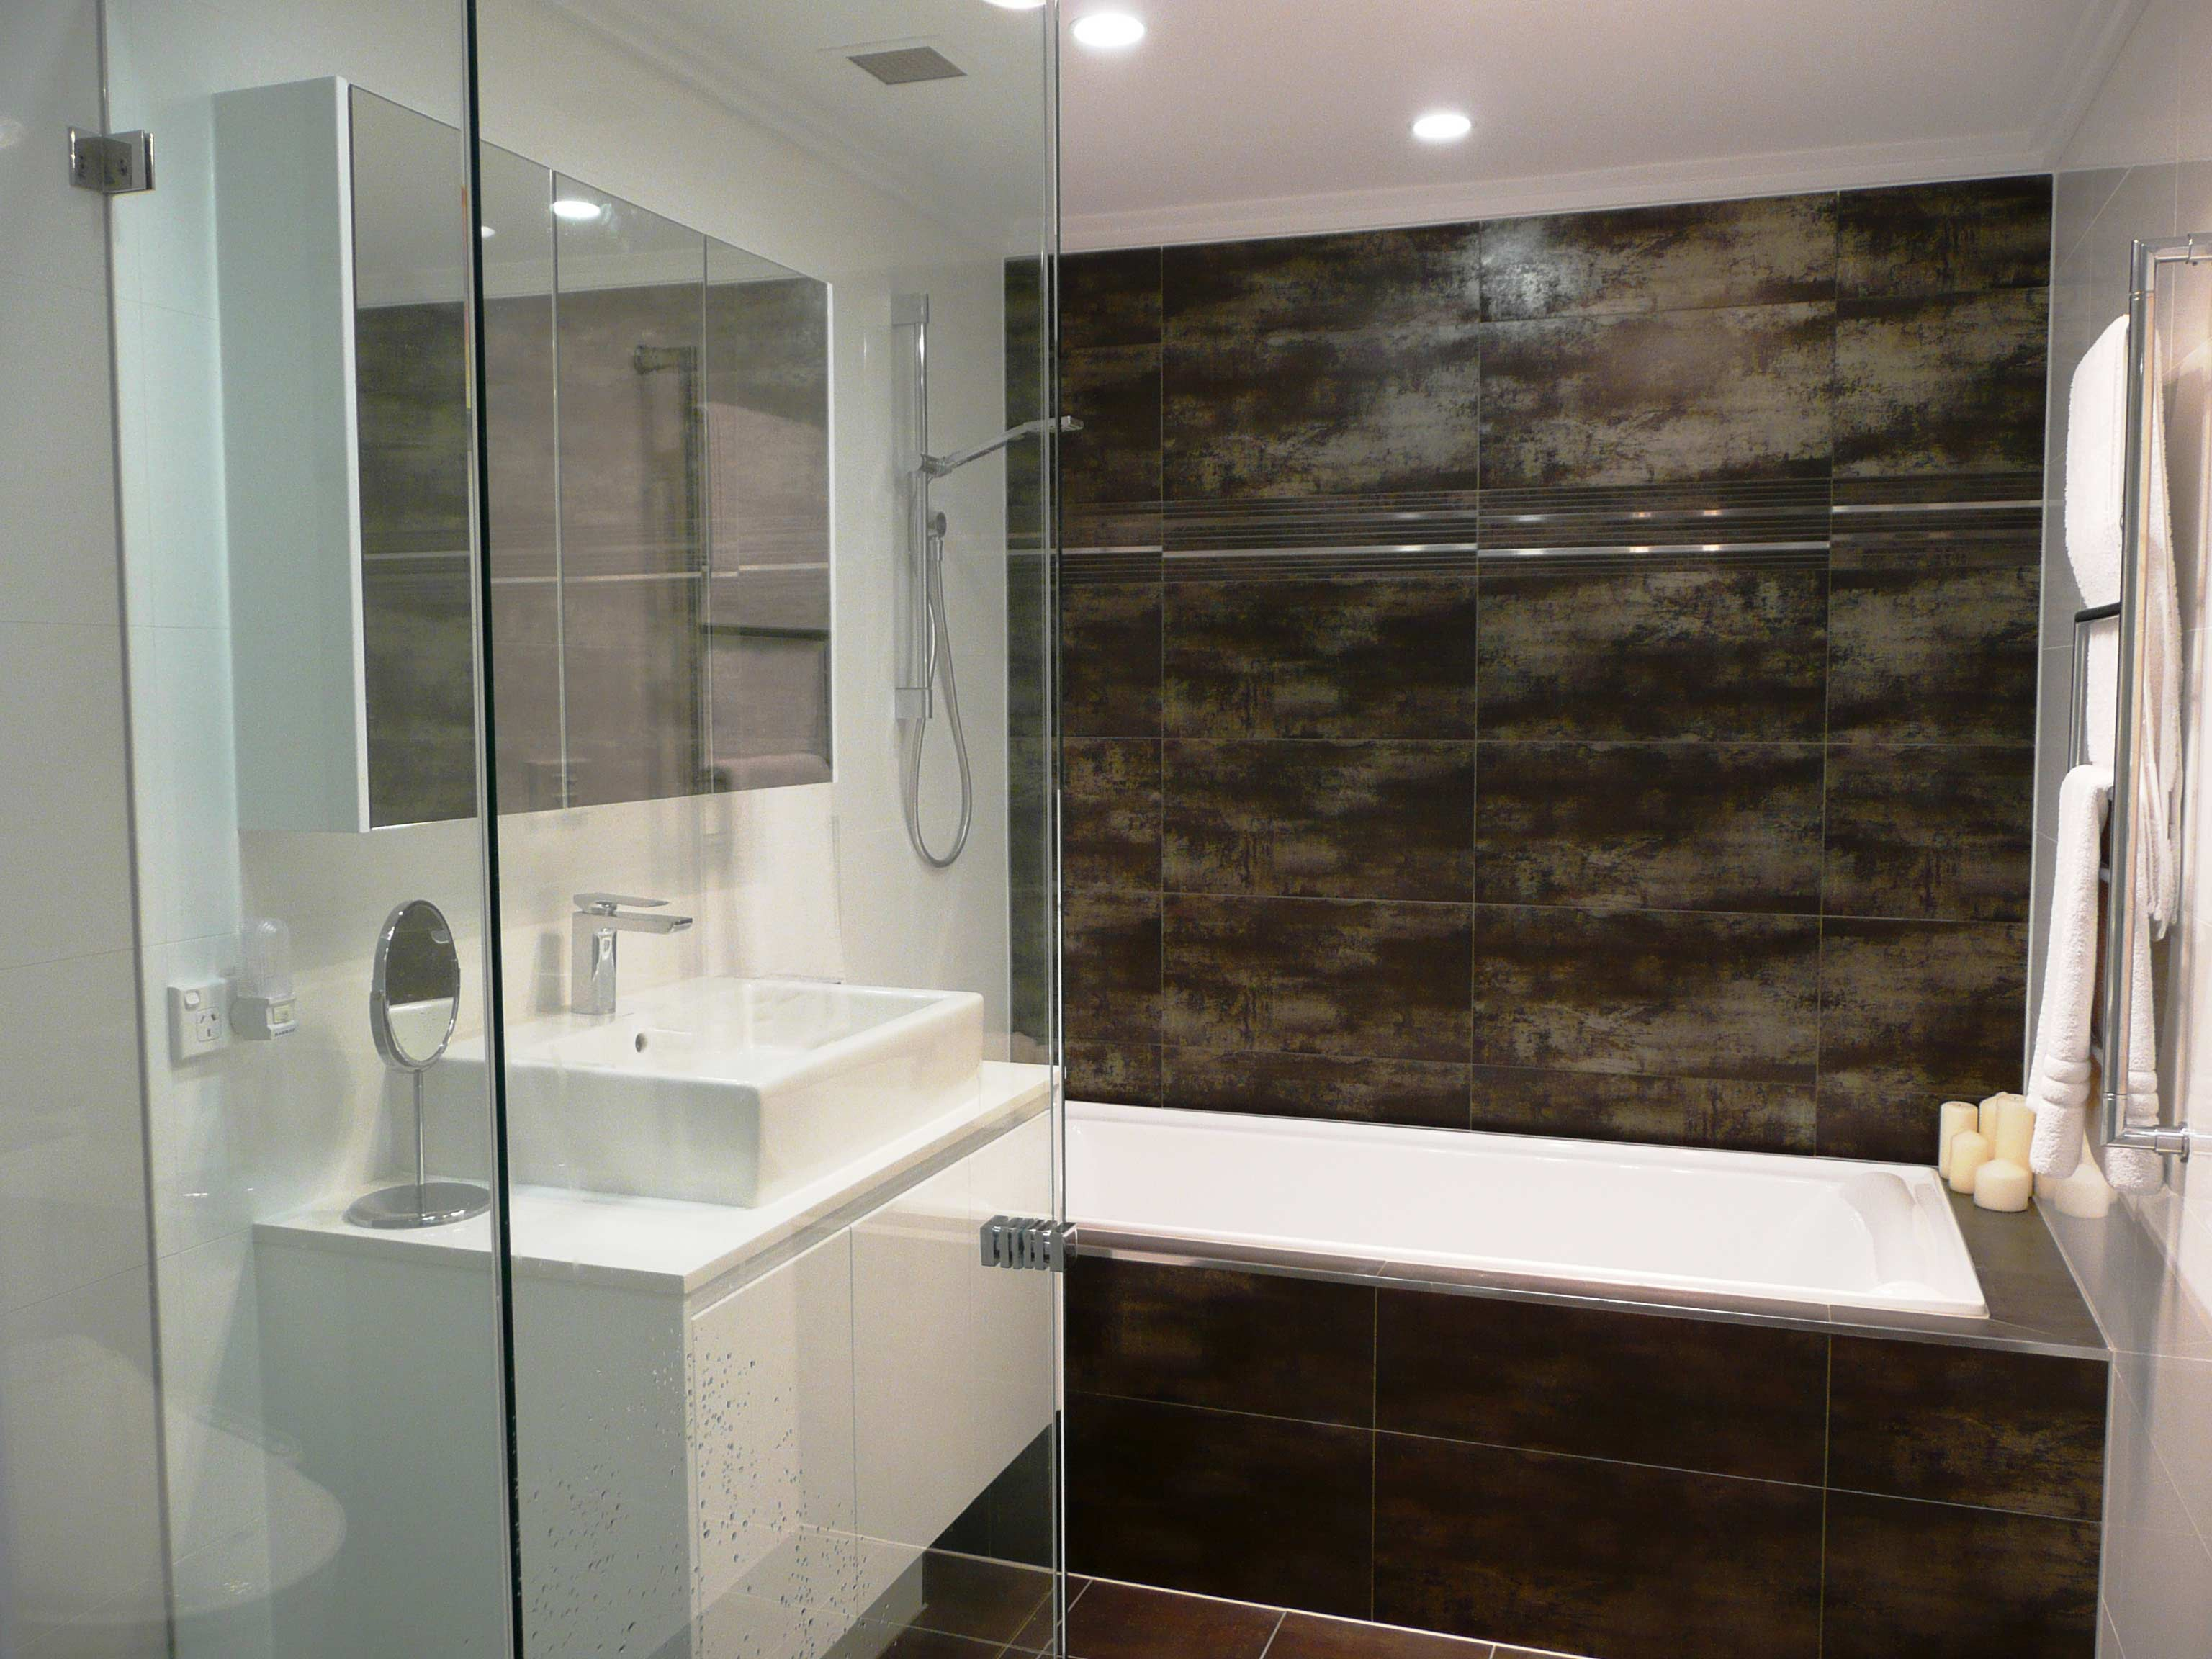 Planning A Bathroom Remodel Consider The Layout First: Small Bathroom Renovations/Designs Sydney, Best Vanities